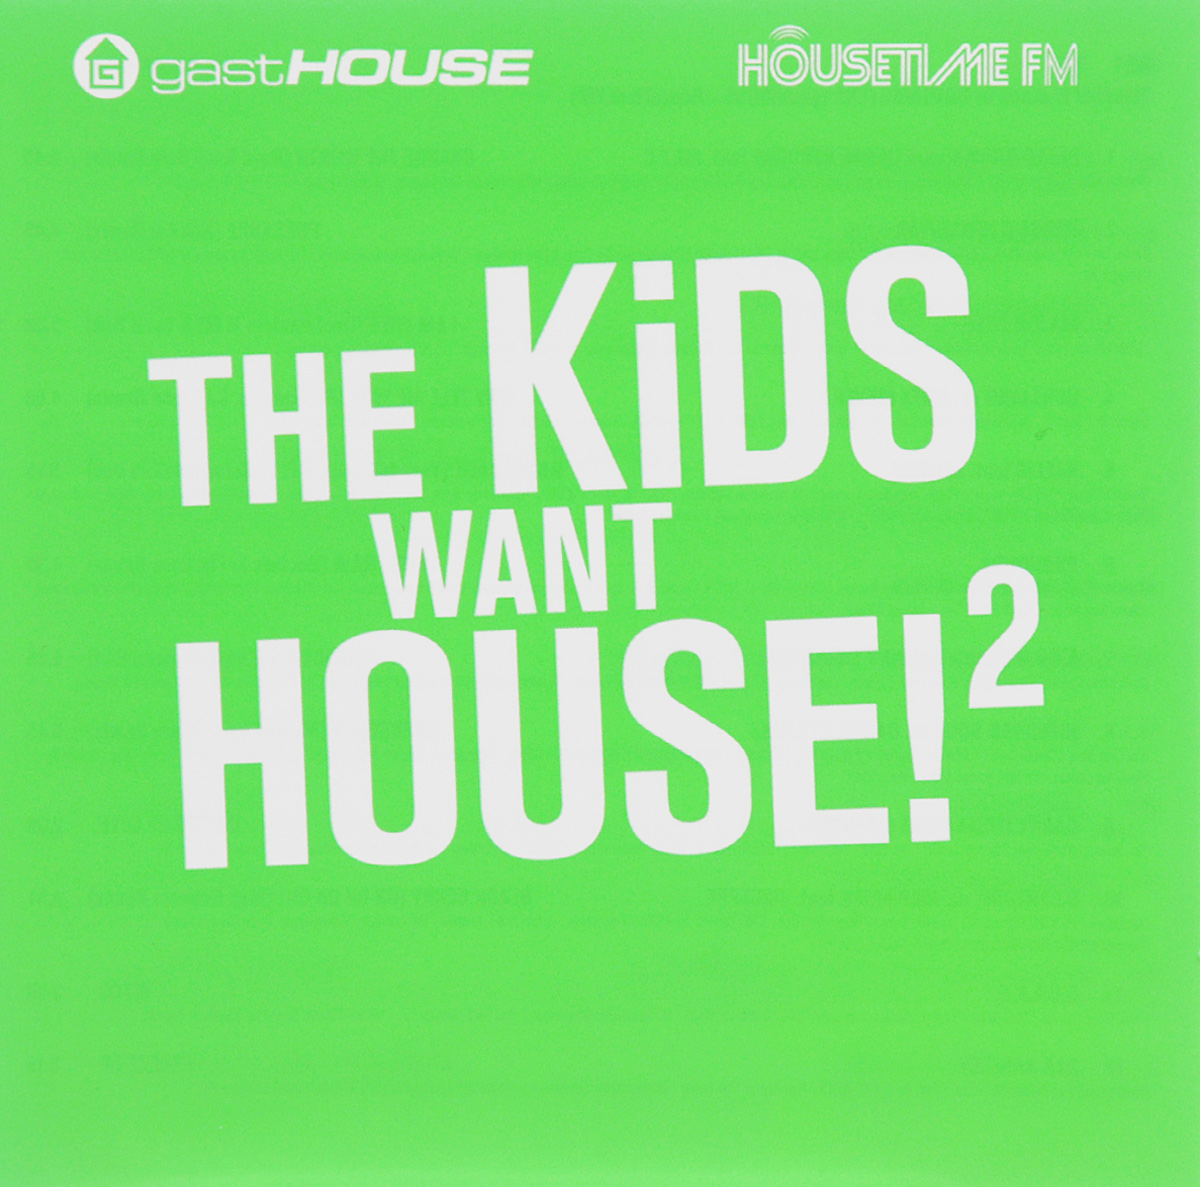 Питер Браун,Danny Freakazoid,Уолли Лопез,Quake,Нильс Ван Гог,Bootmasters,My Digital Enemy,Kaiserdisco,Terrazi,The Green Eye The Kids Want House! 2 (2 CD) the house by the churchyard